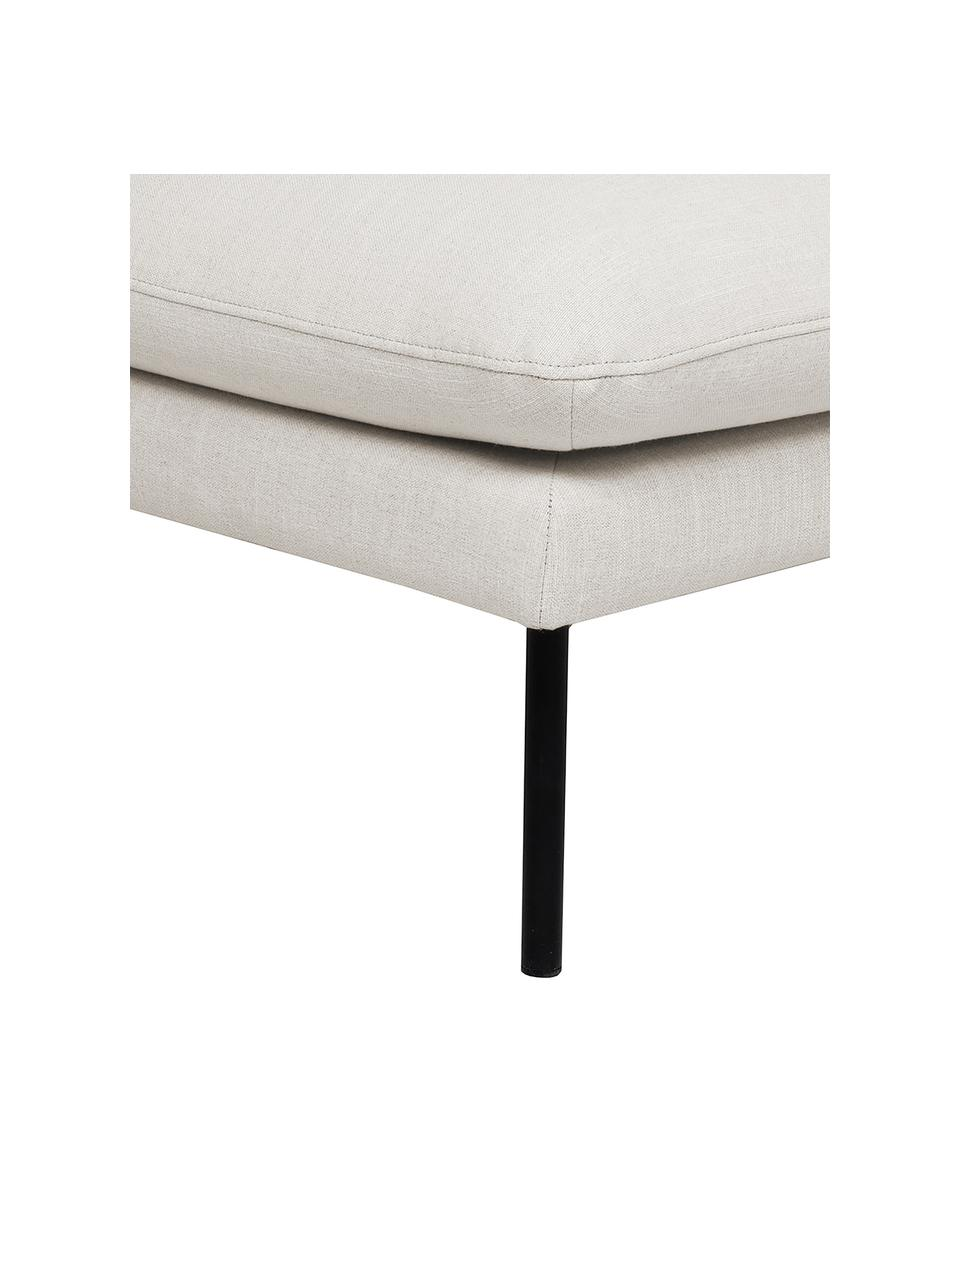 Tabouret/repose-pieds gris Moby, Beige